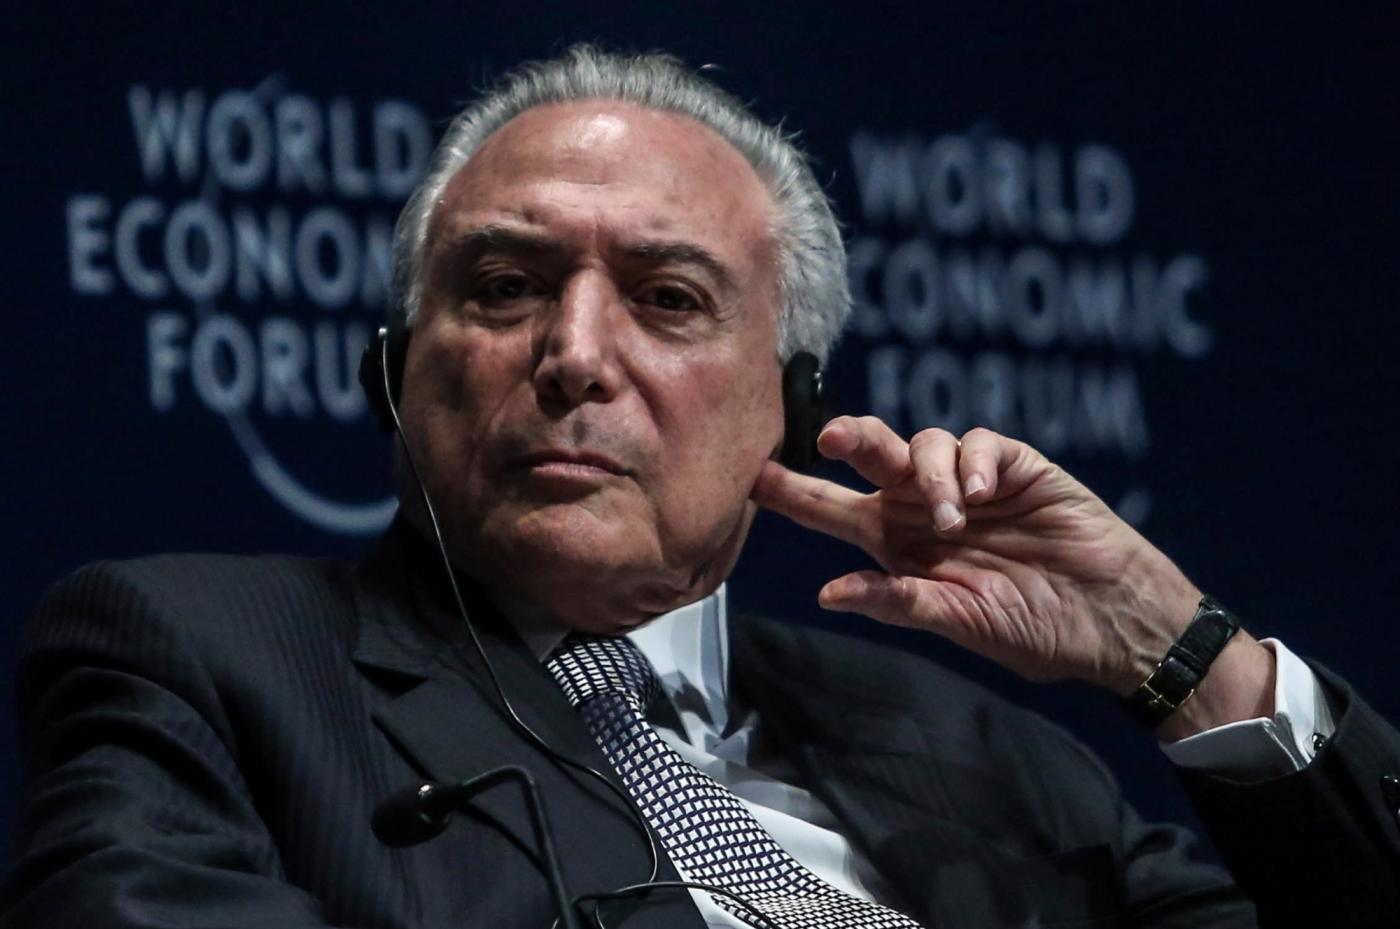 SAO PAULO, March 15, 2018 (Xinhua) -- Brazilian President Michel Temer takes part in the opening session of the World Economic Forum for Latin America, in Sao Paulo, Brazil, on March 14, 2018. (Xinhua/Rahel Patrasso/IANS) by .